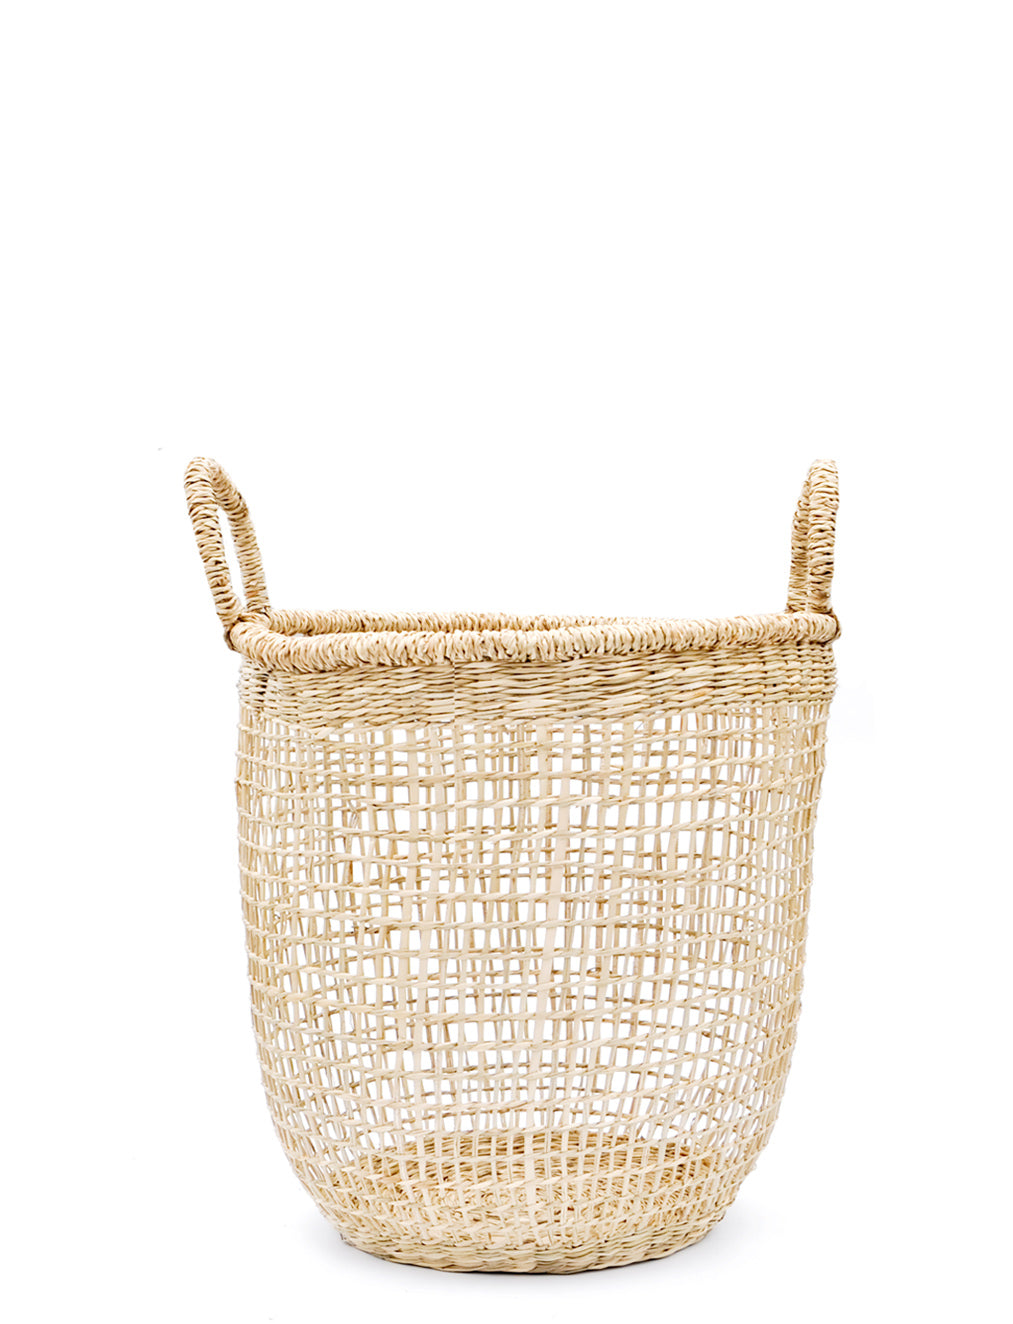 Extra Small: Nesting Seagrass Storage Basket in Extra Small - LEIF